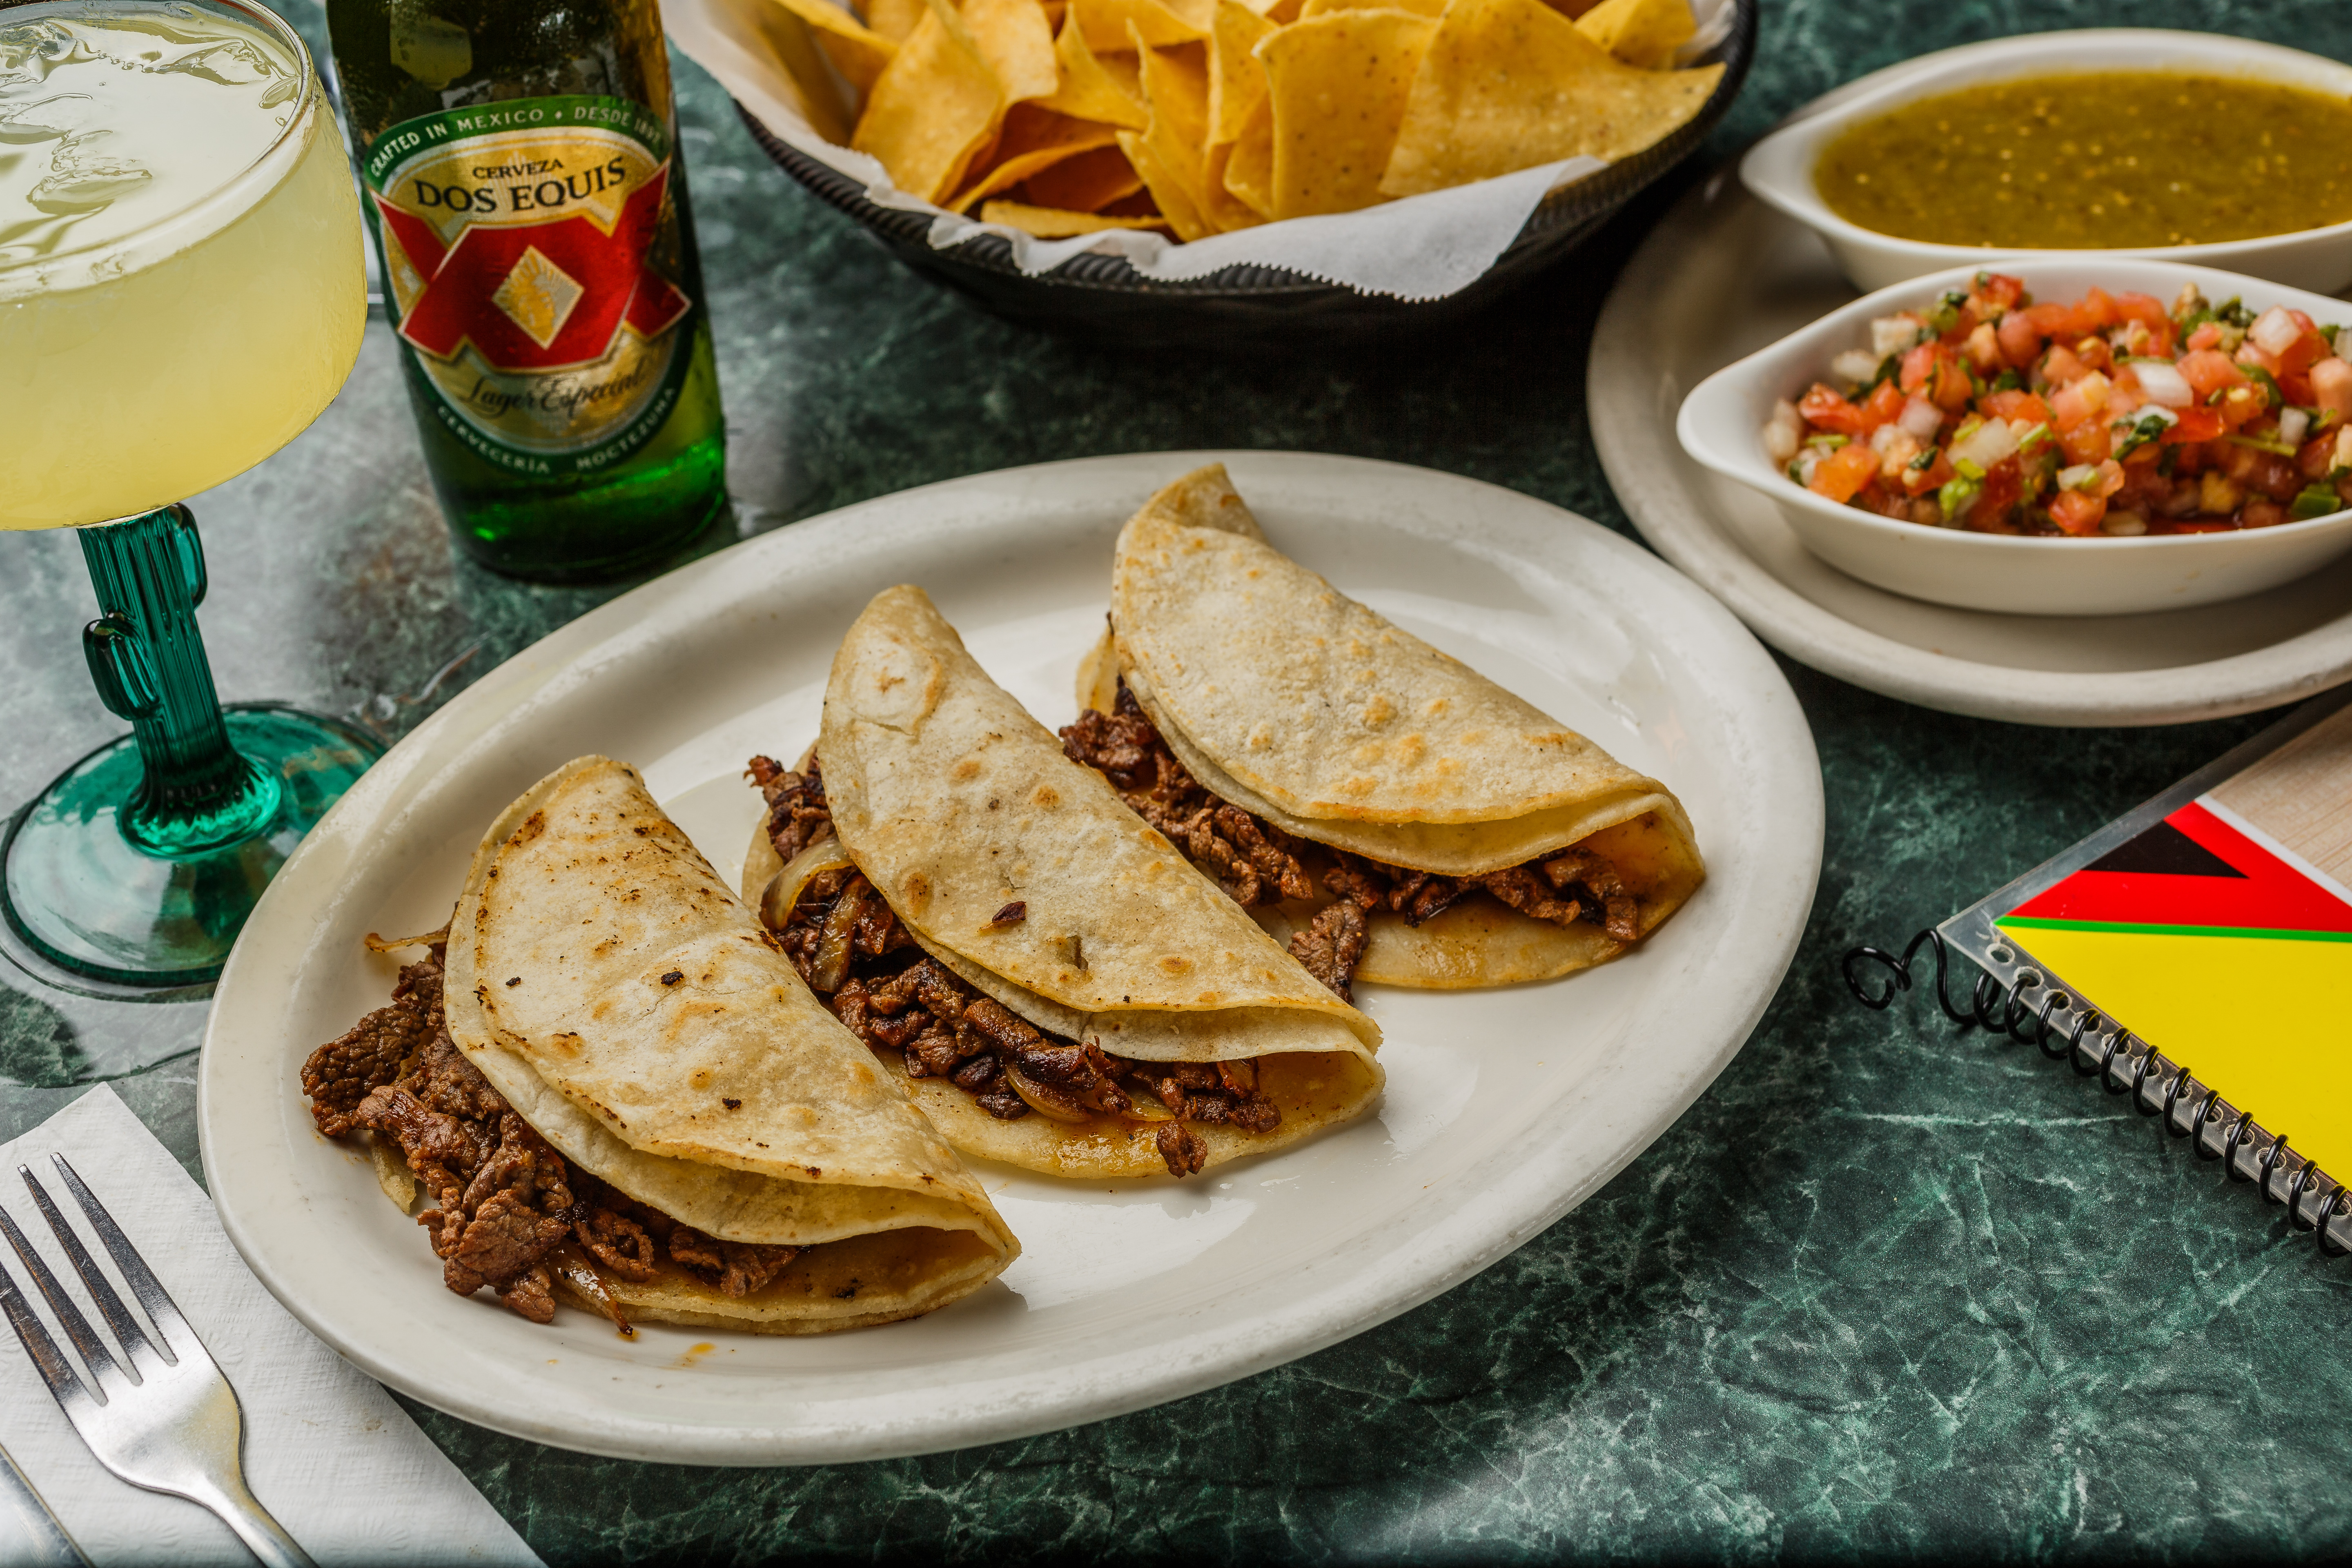 El Sombrero White Cheese Queso Longview Texas Mexican Restaurant Food Taco Fajitas